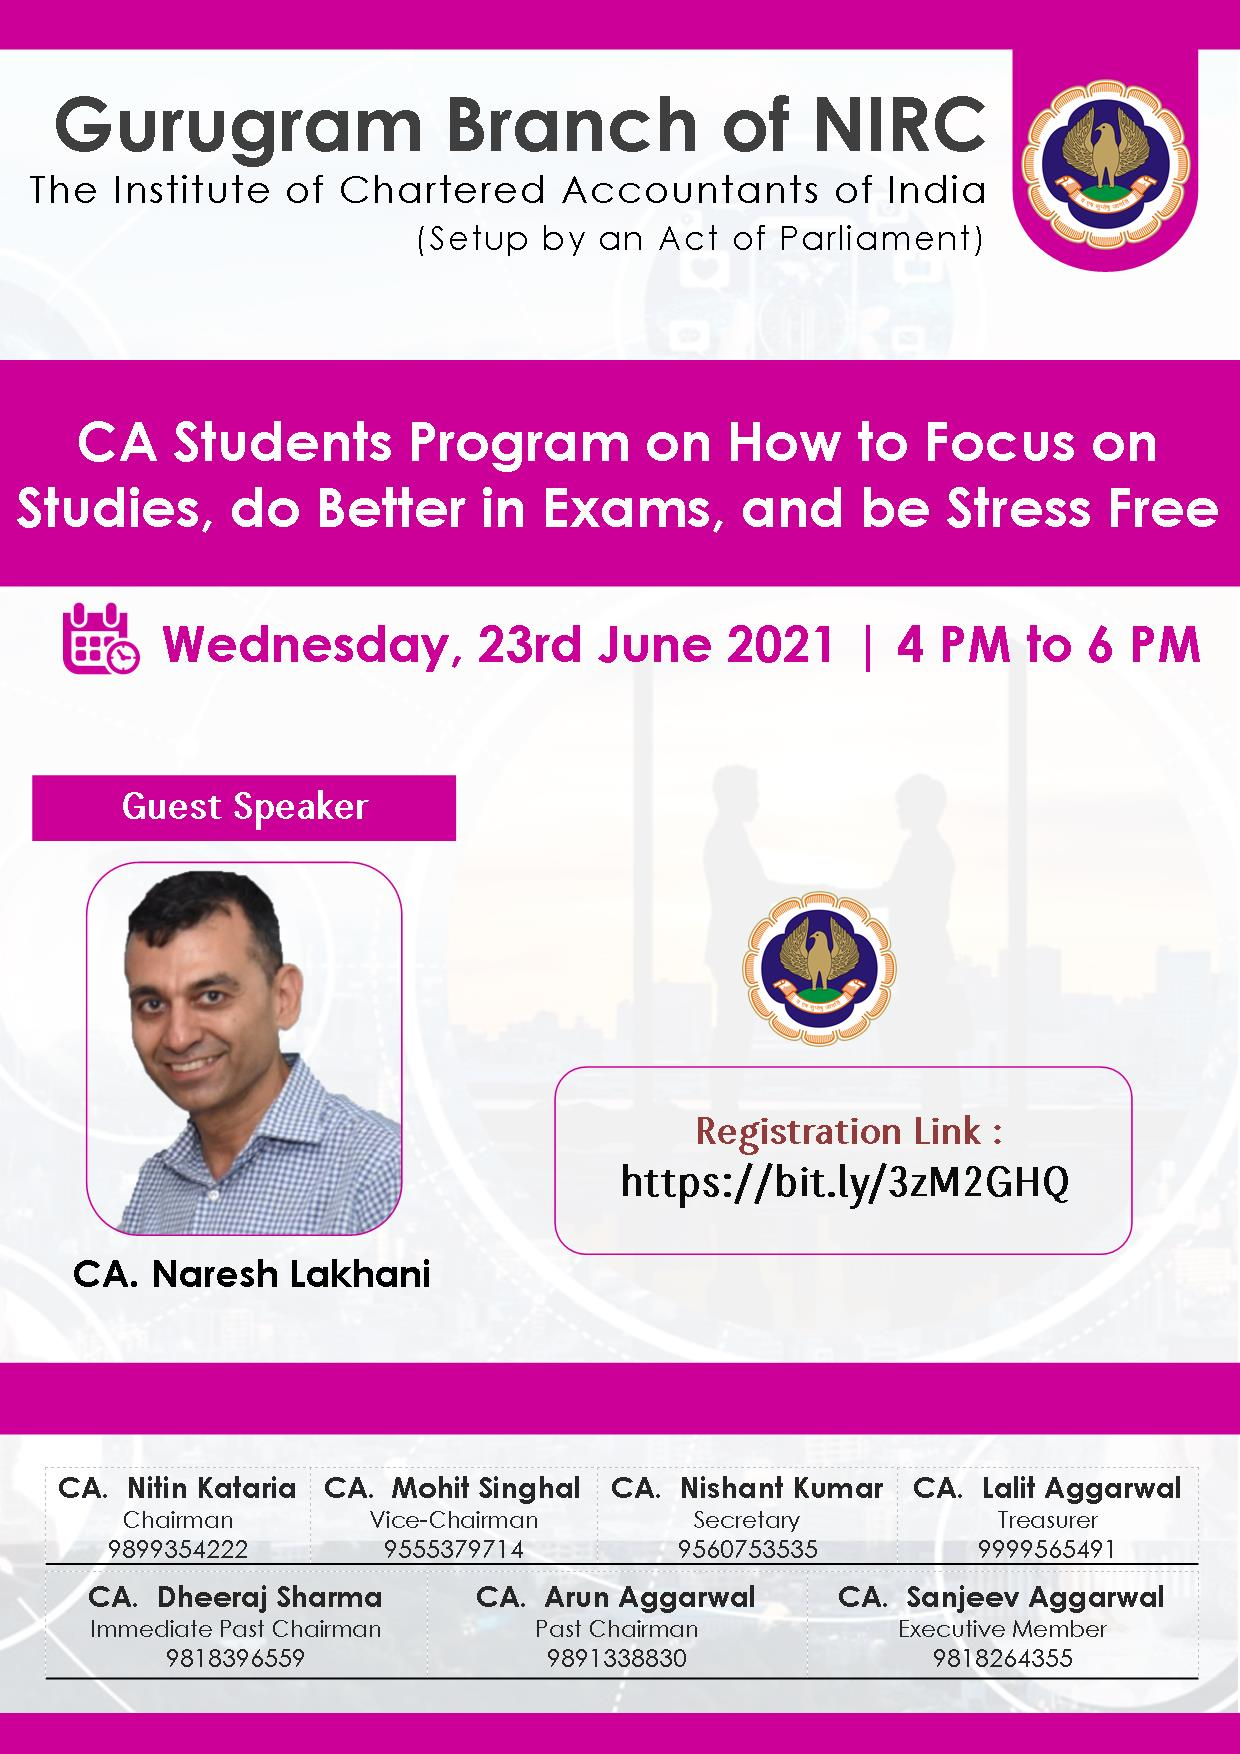 VCM on How to Focus on Studies, do Better in Exams, and be Stress Free for CA Students